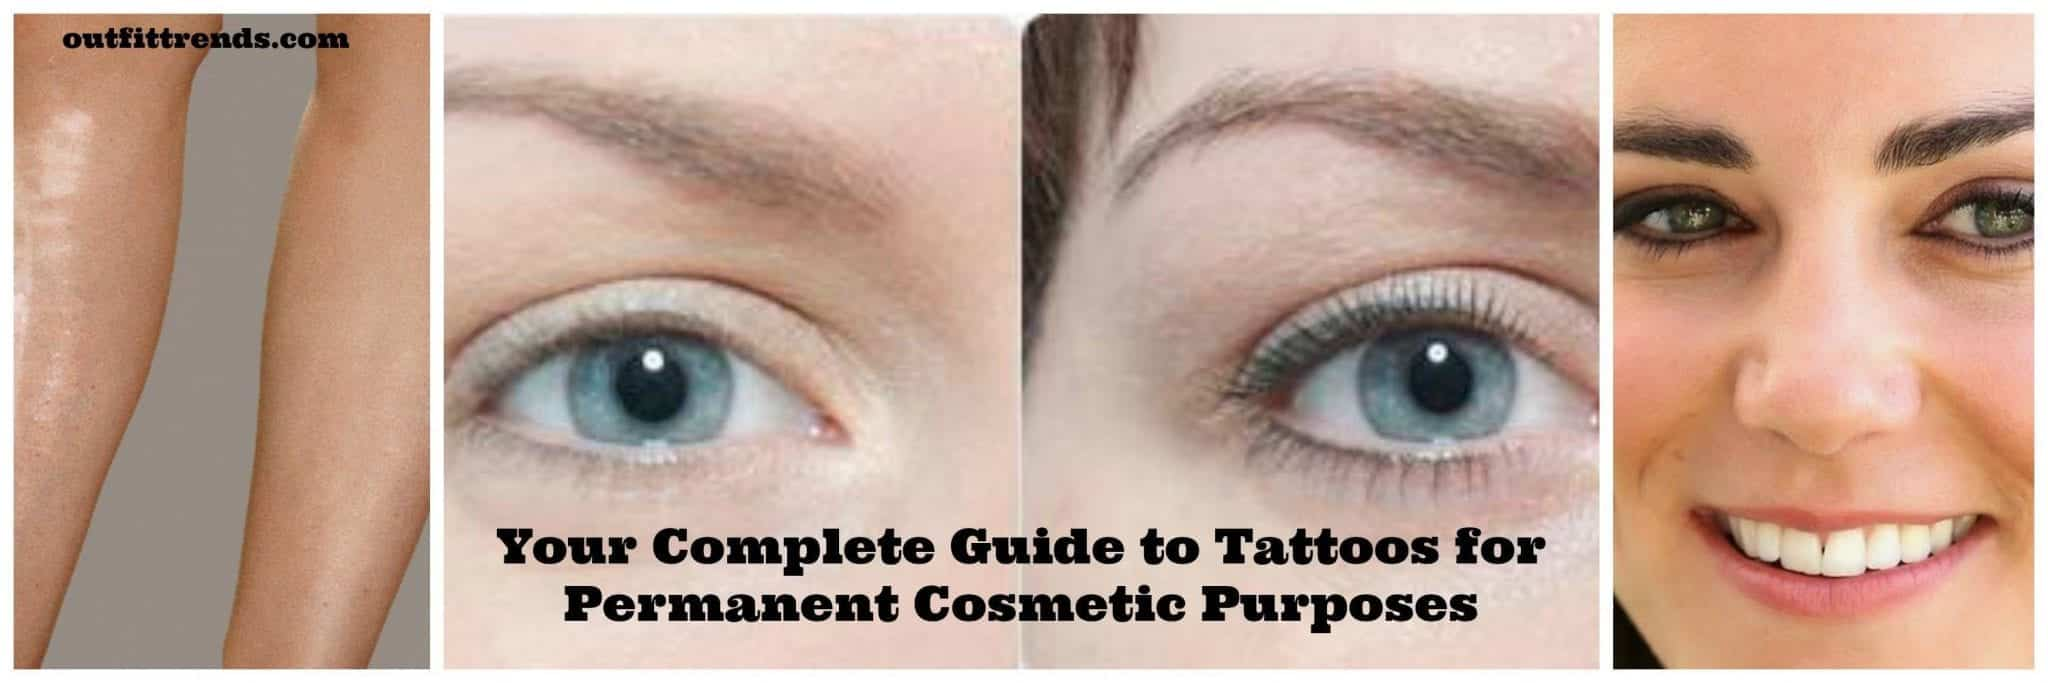 permanent cosmetic tattoos